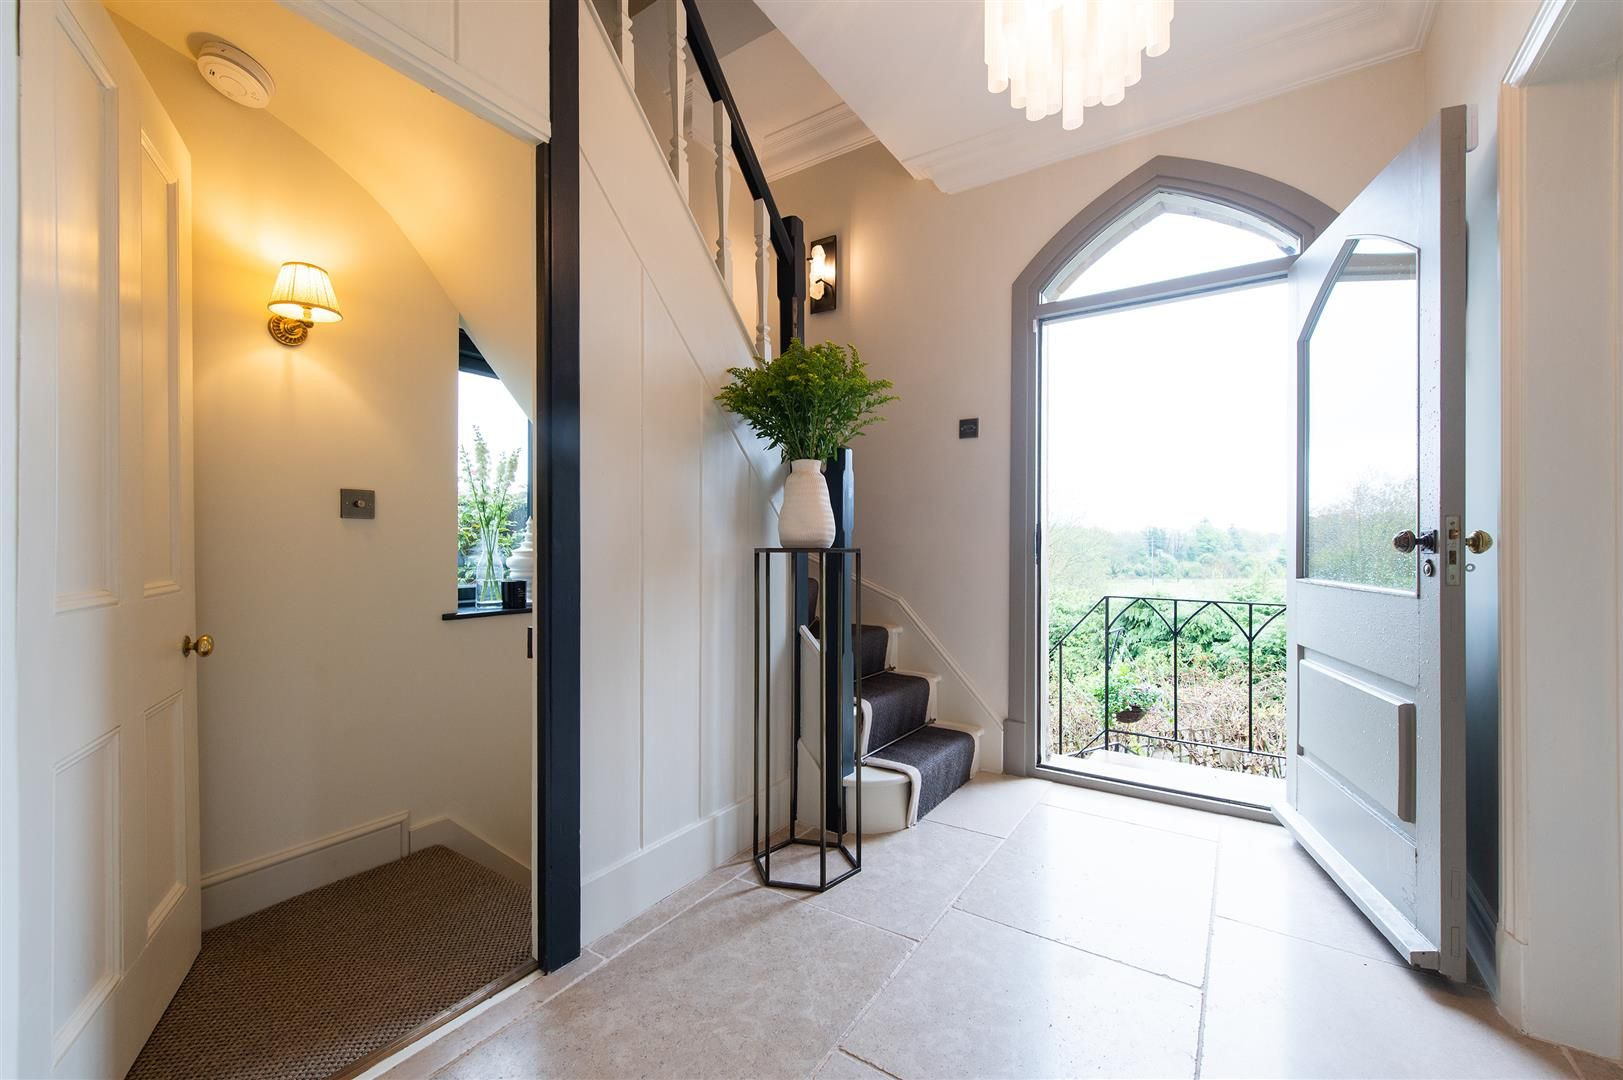 4 bed house for sale in Kinver 5